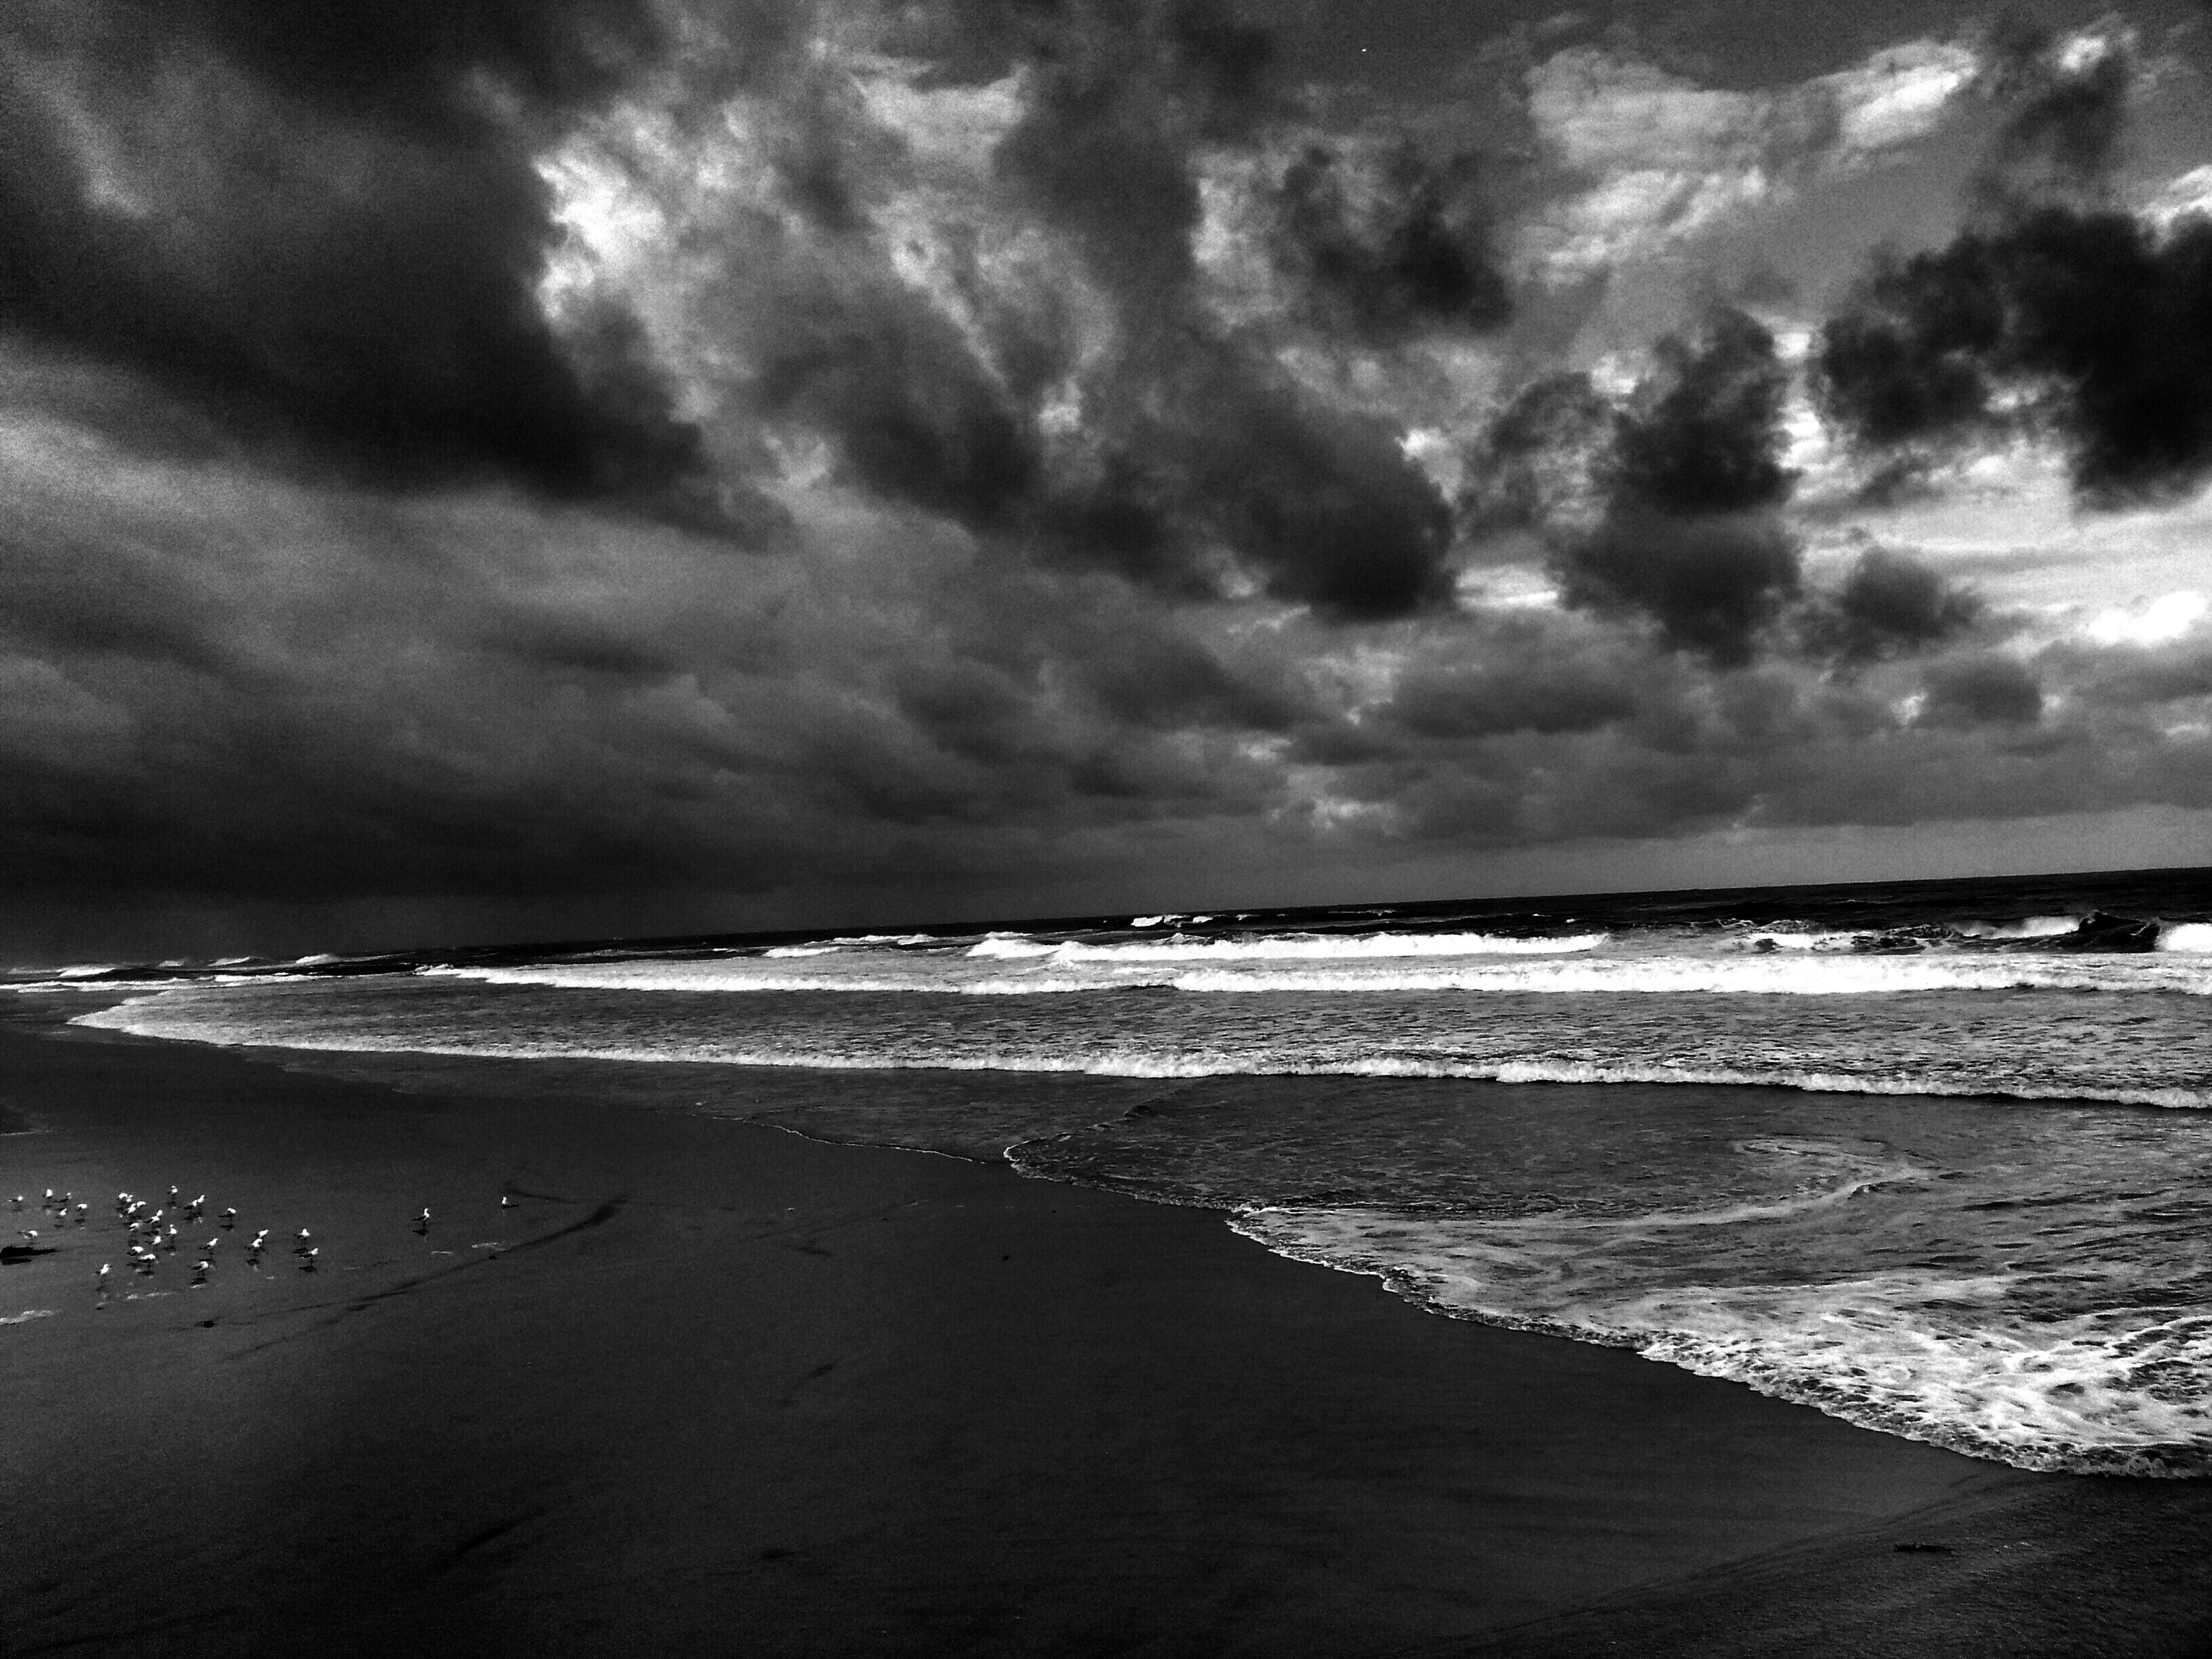 sea, beach, horizon over water, shore, water, sky, sand, scenics, beauty in nature, tranquil scene, cloud - sky, tranquility, wave, cloudy, nature, surf, coastline, idyllic, cloud, overcast